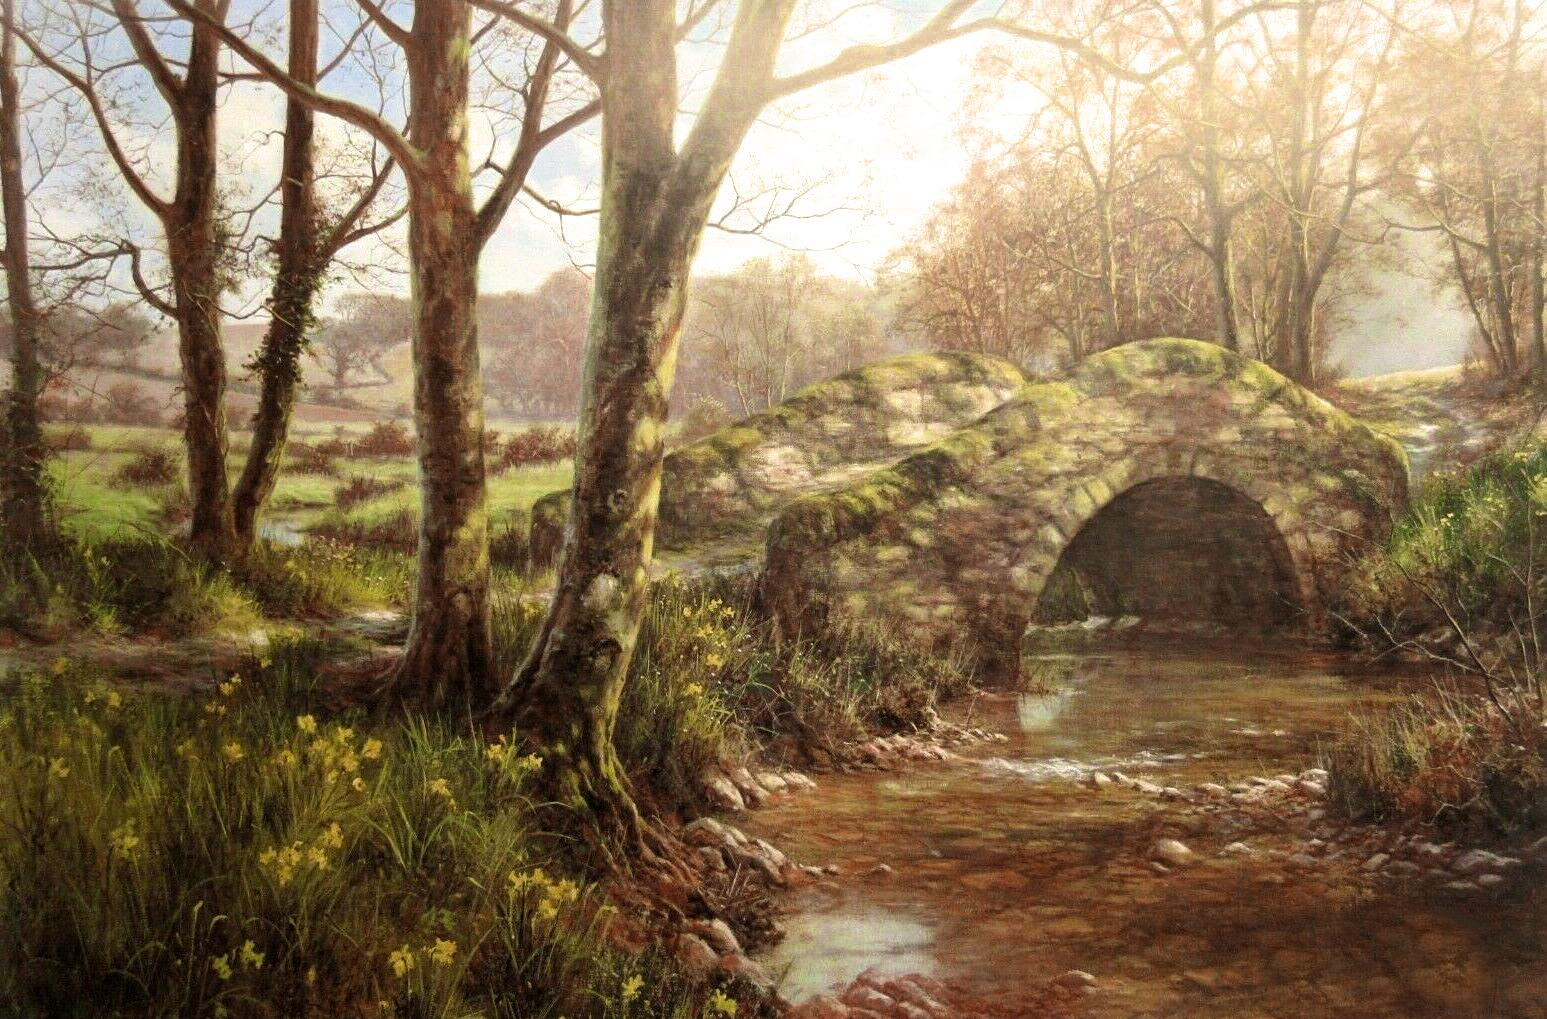 Daffodil Walk by David Dipnall - landscape art print